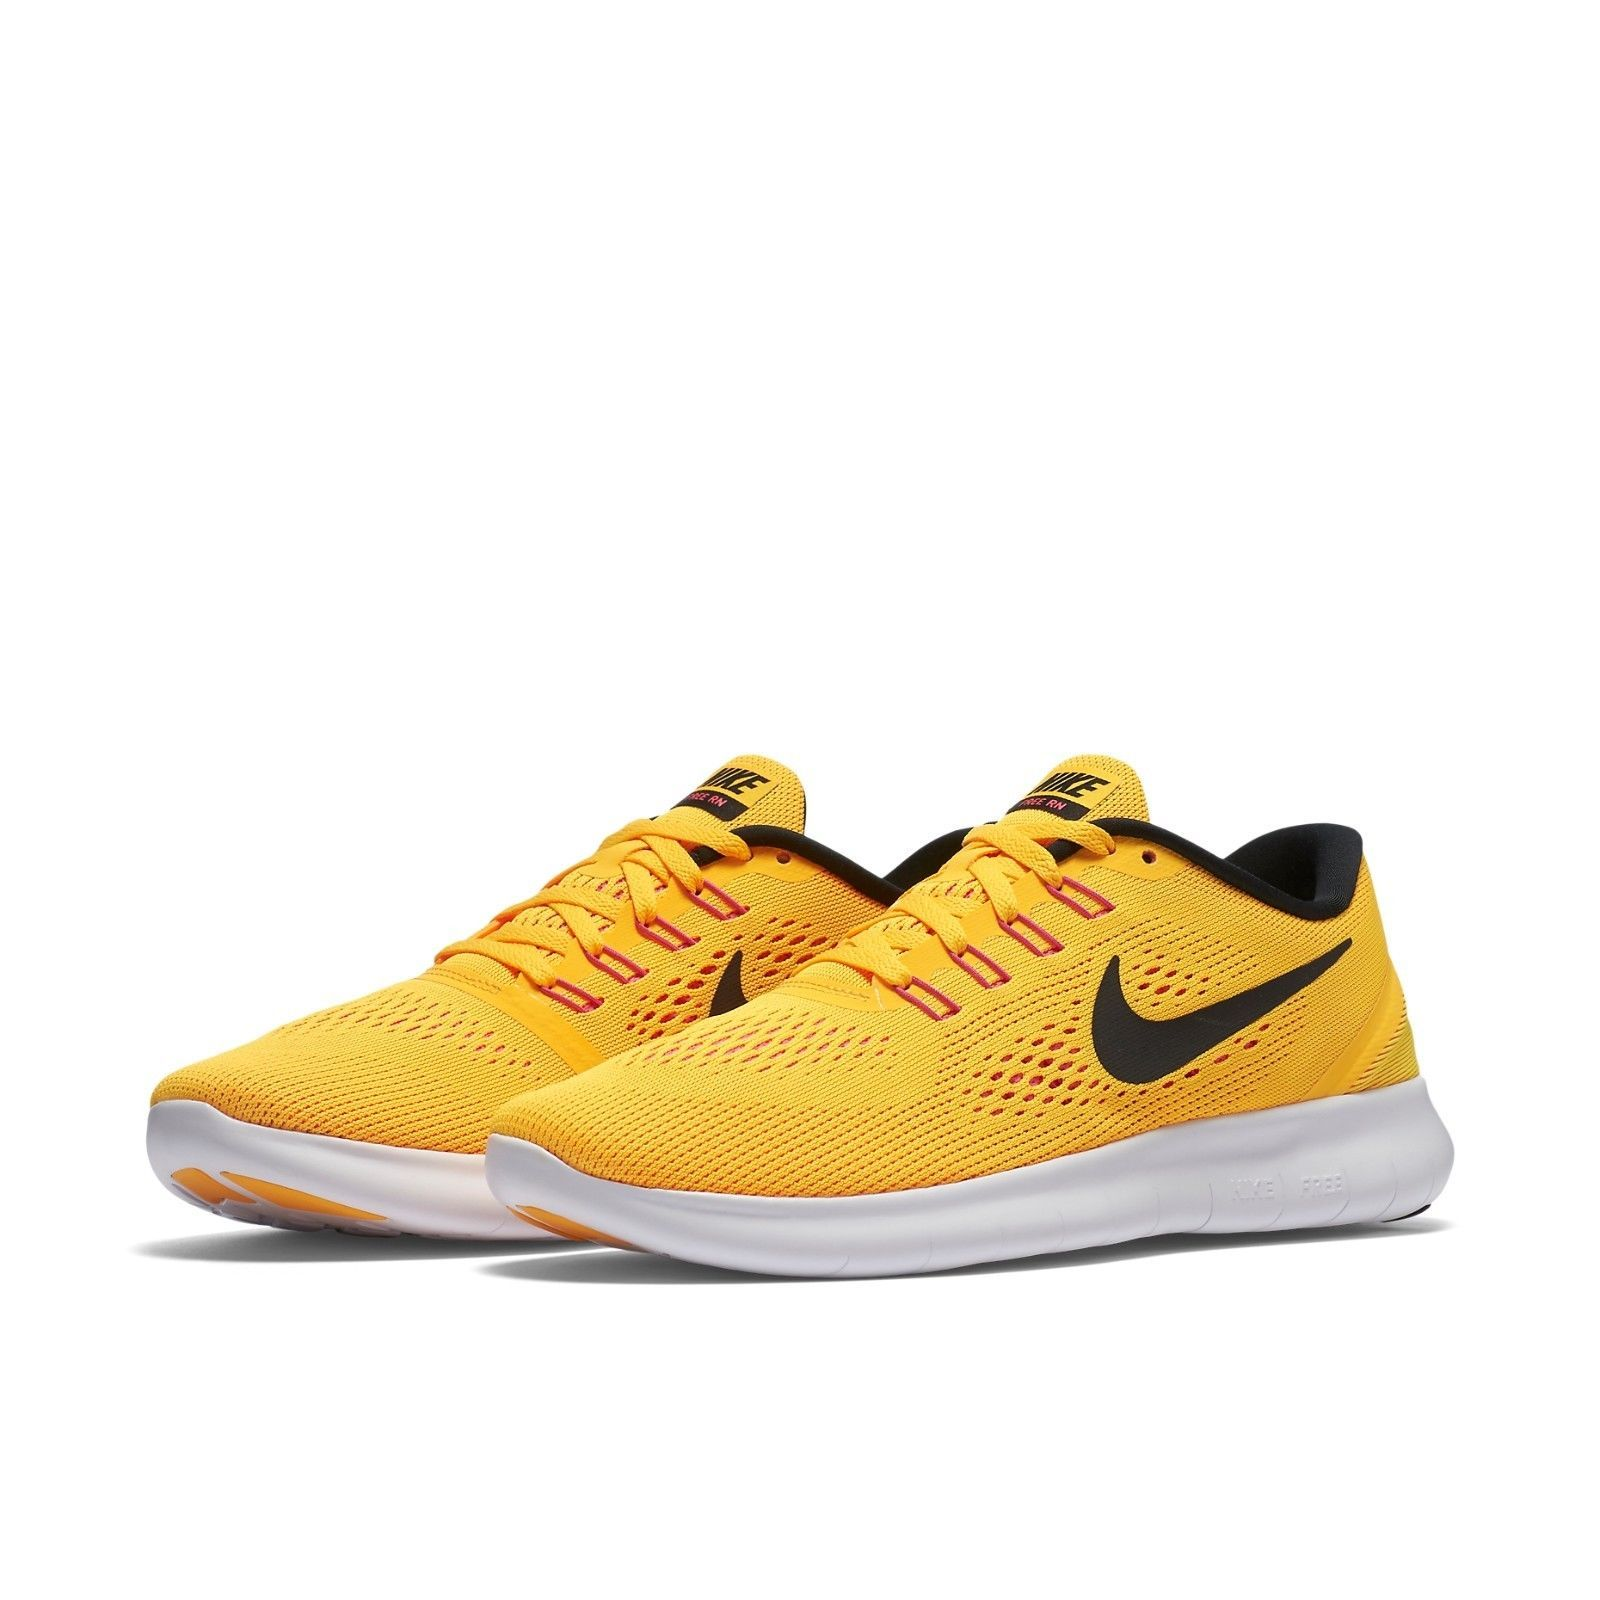 reputable site cab72 dccc0 ... greece womens nike free rn running shoes new orange pink black 100  696c1 e242a